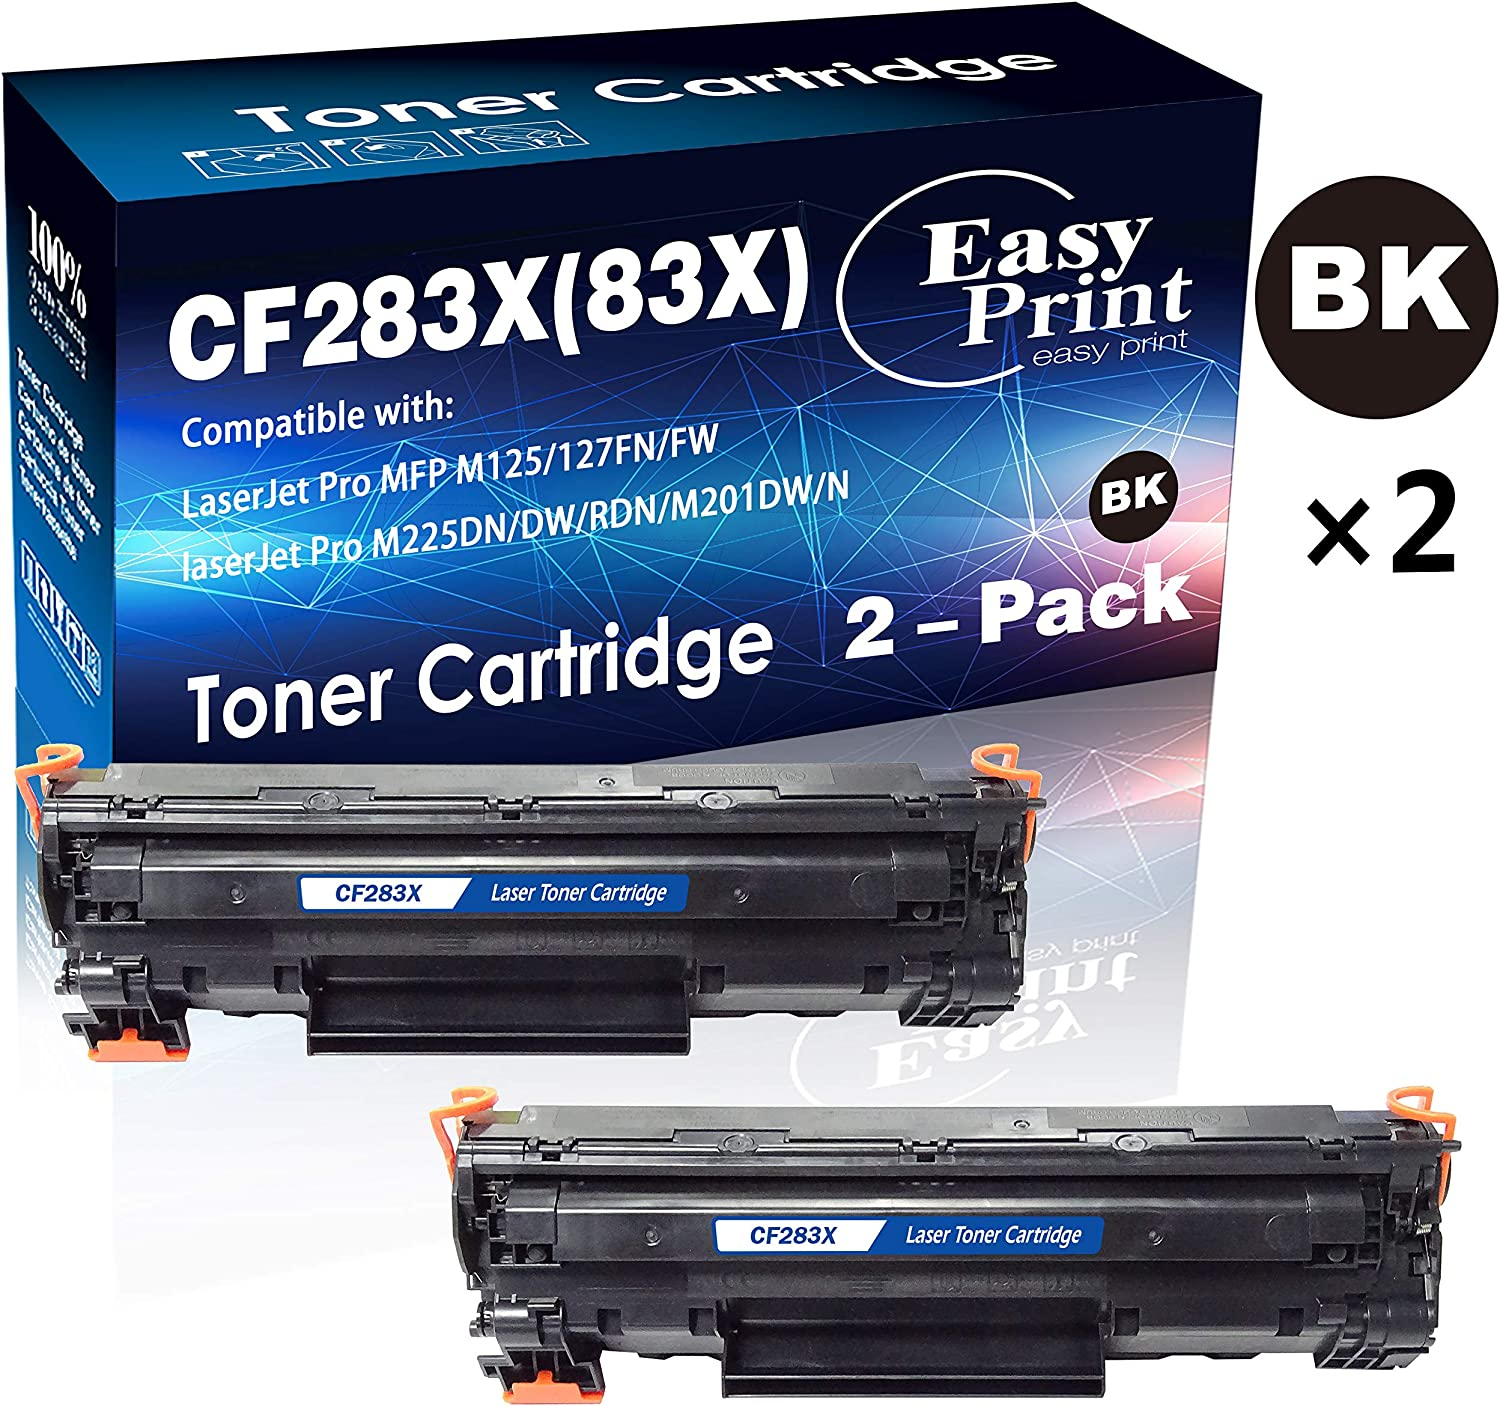 2-Pack Compatible 283X CF283X Toner Cartridge 83X Used for HP Laserjet Pro M225DN M225DW M225RDN M201DW M201N Printer, Sold by EasyPrint